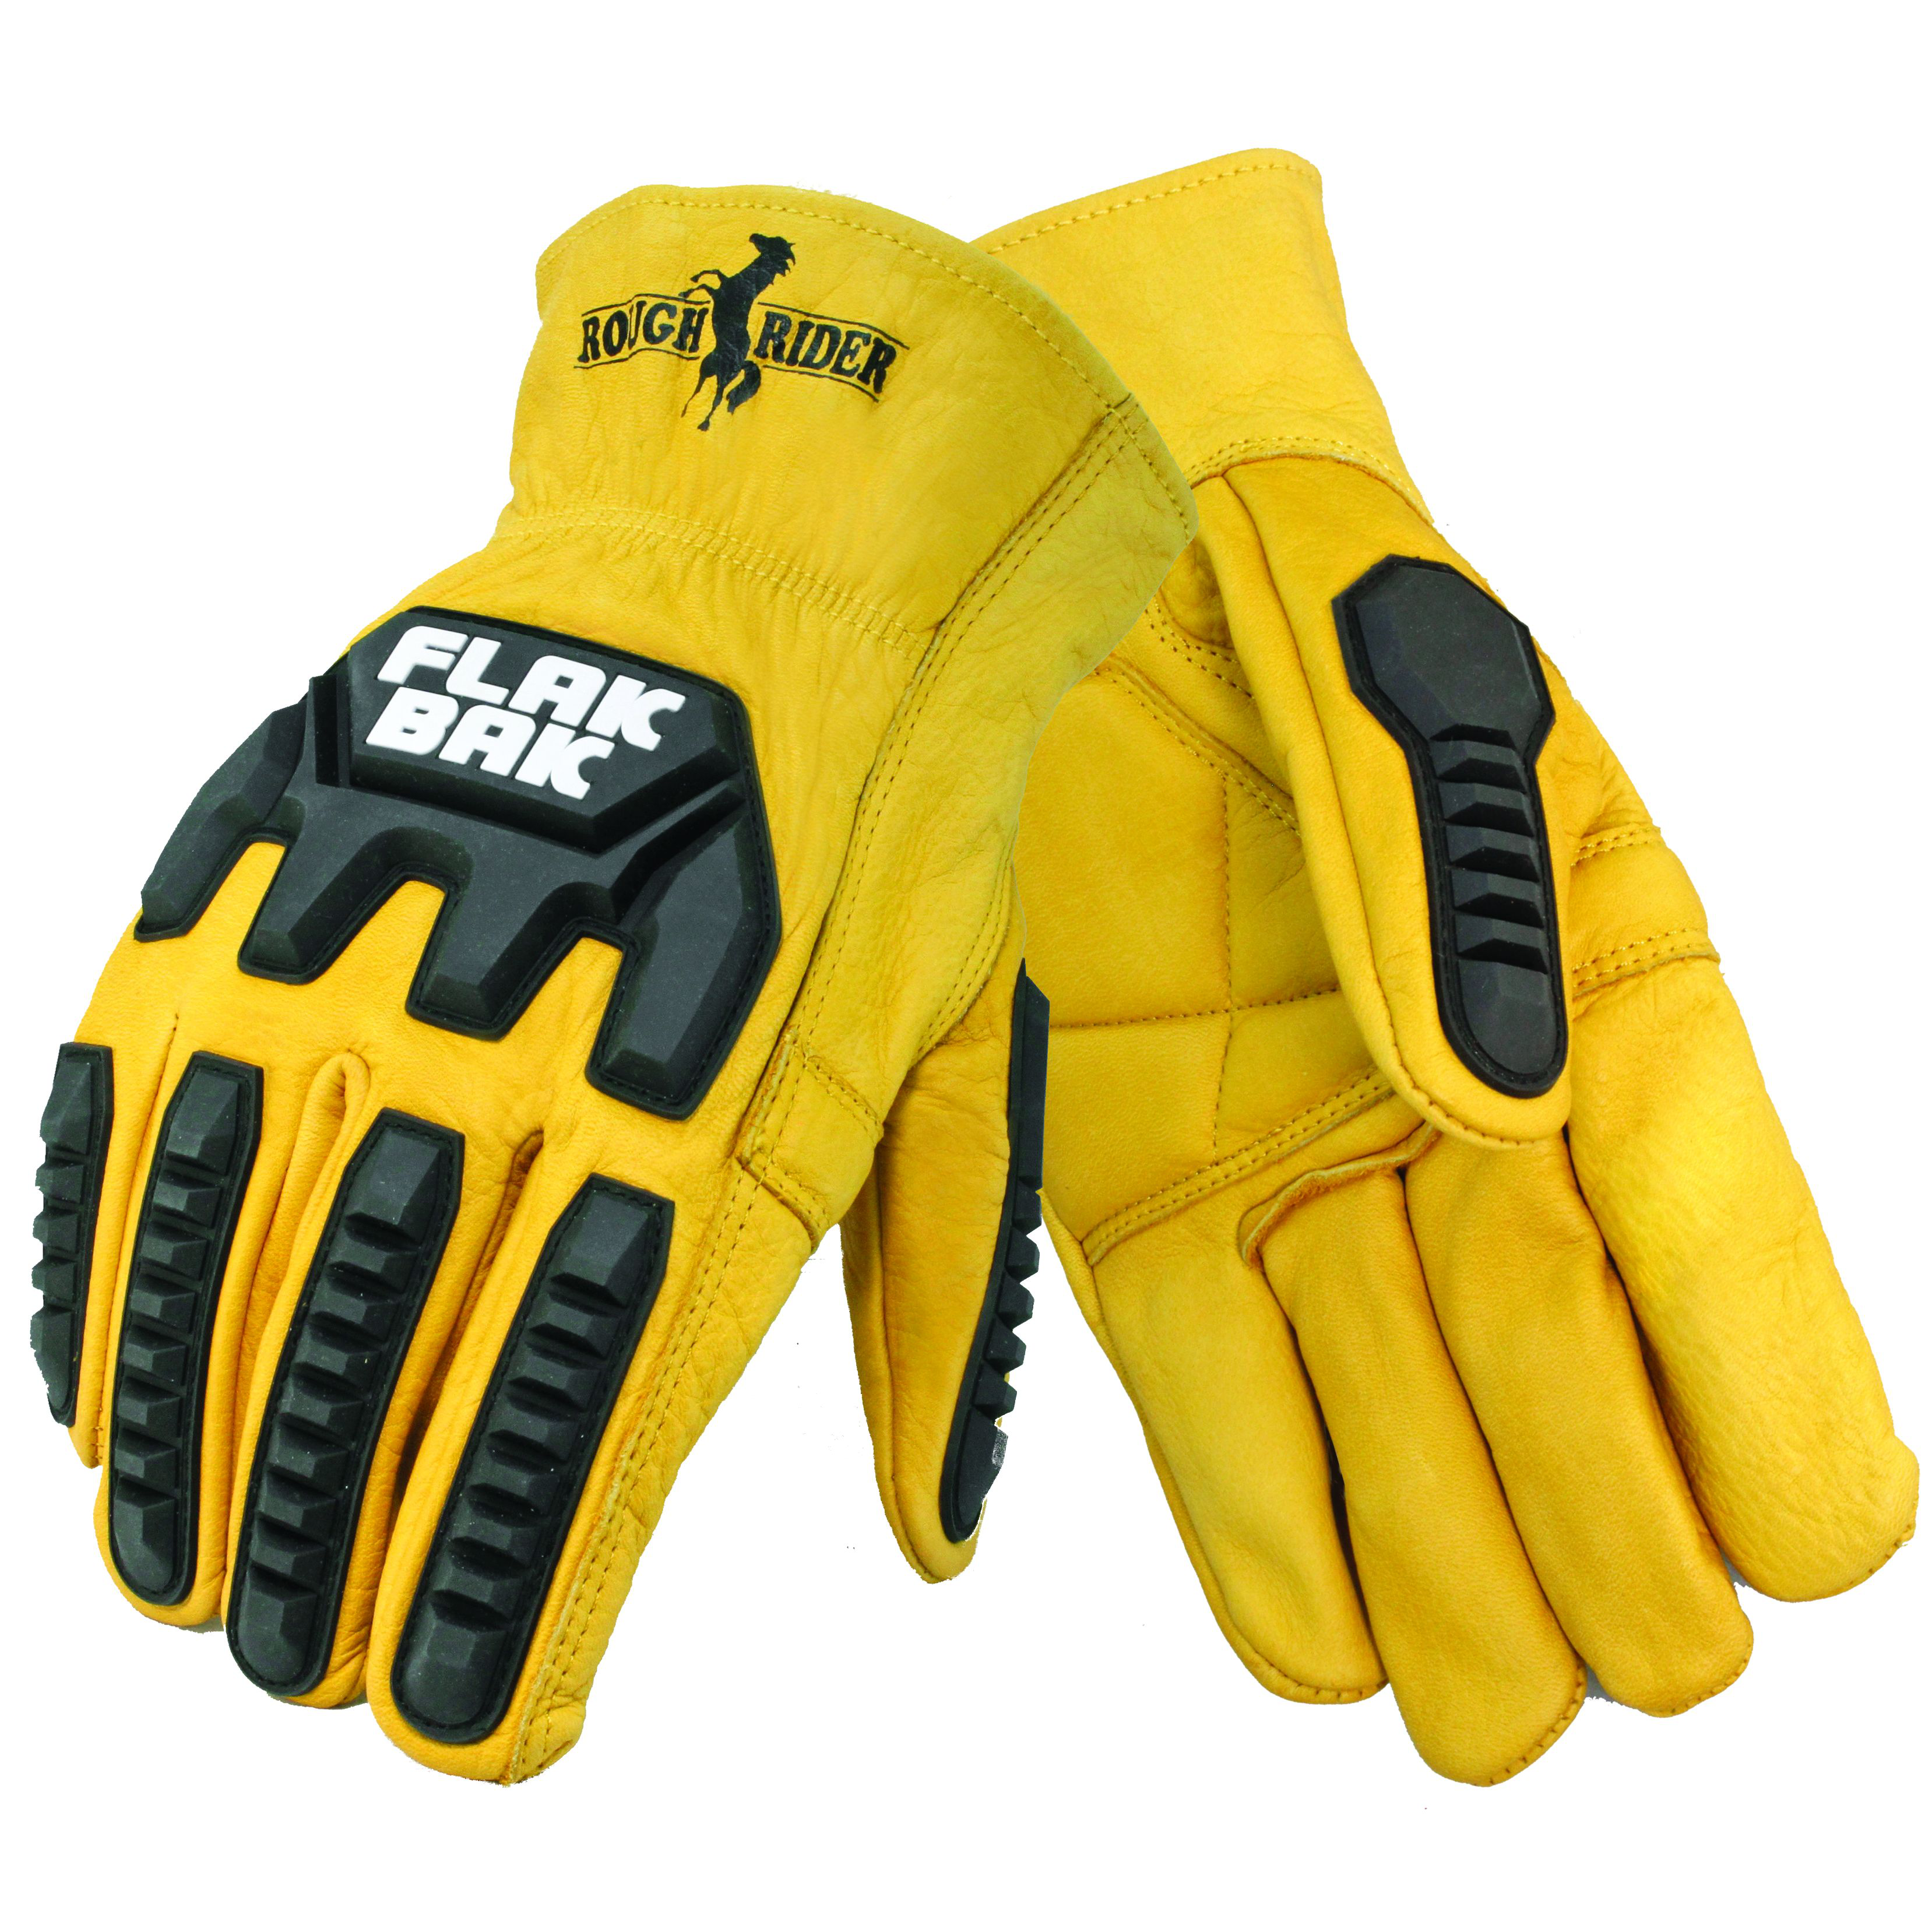 galeton-rough-rider-flakbak-impact-protection-leather-driver-gloves